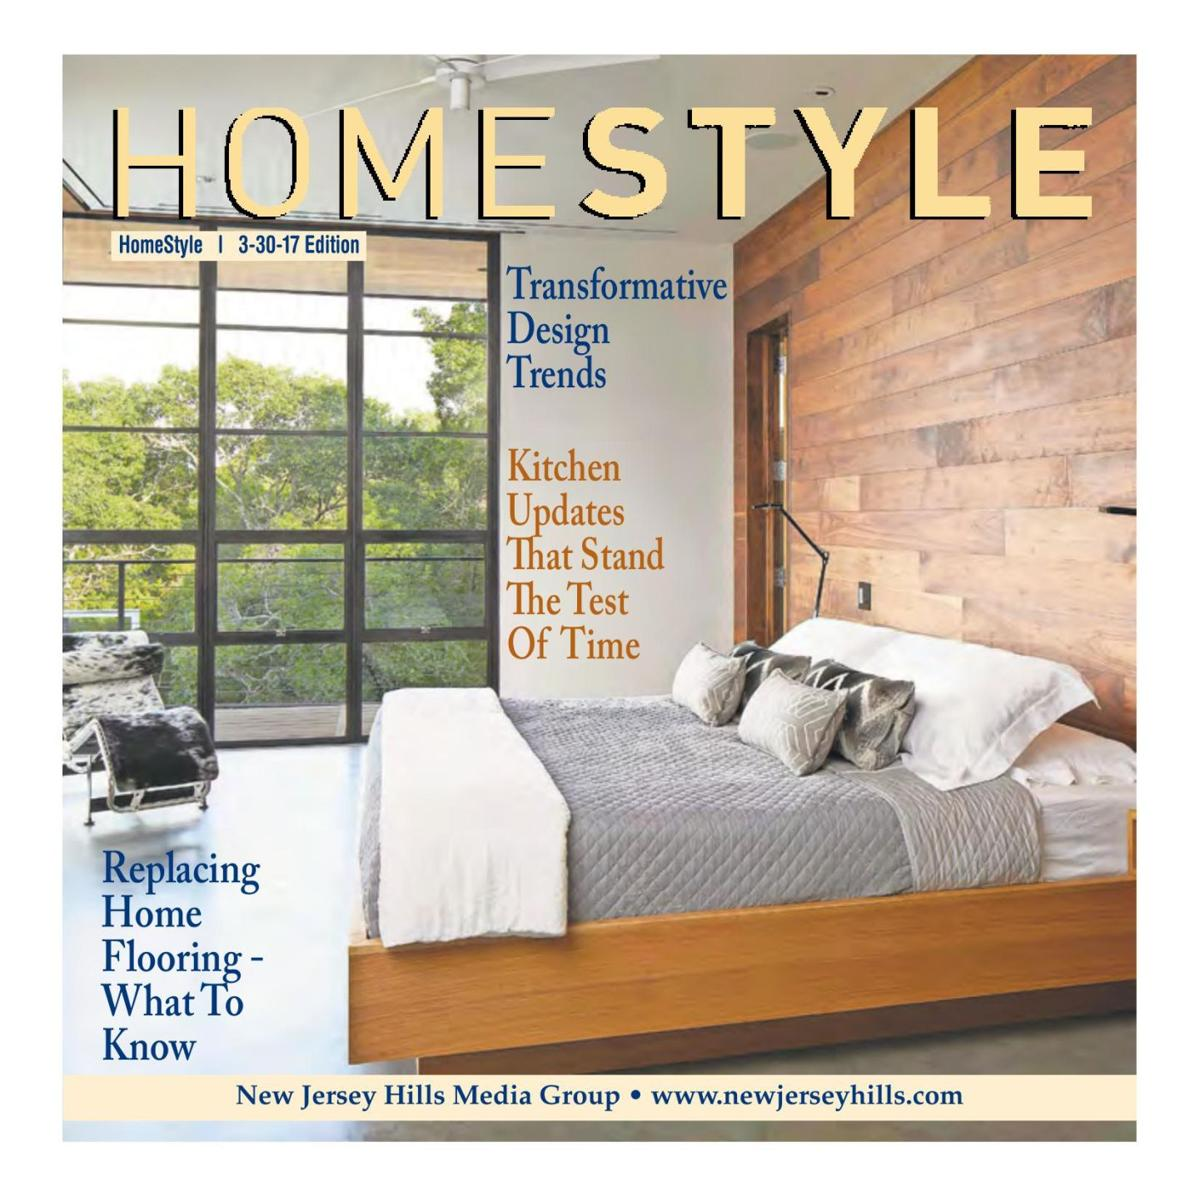 Homestyle - March 30, 2017